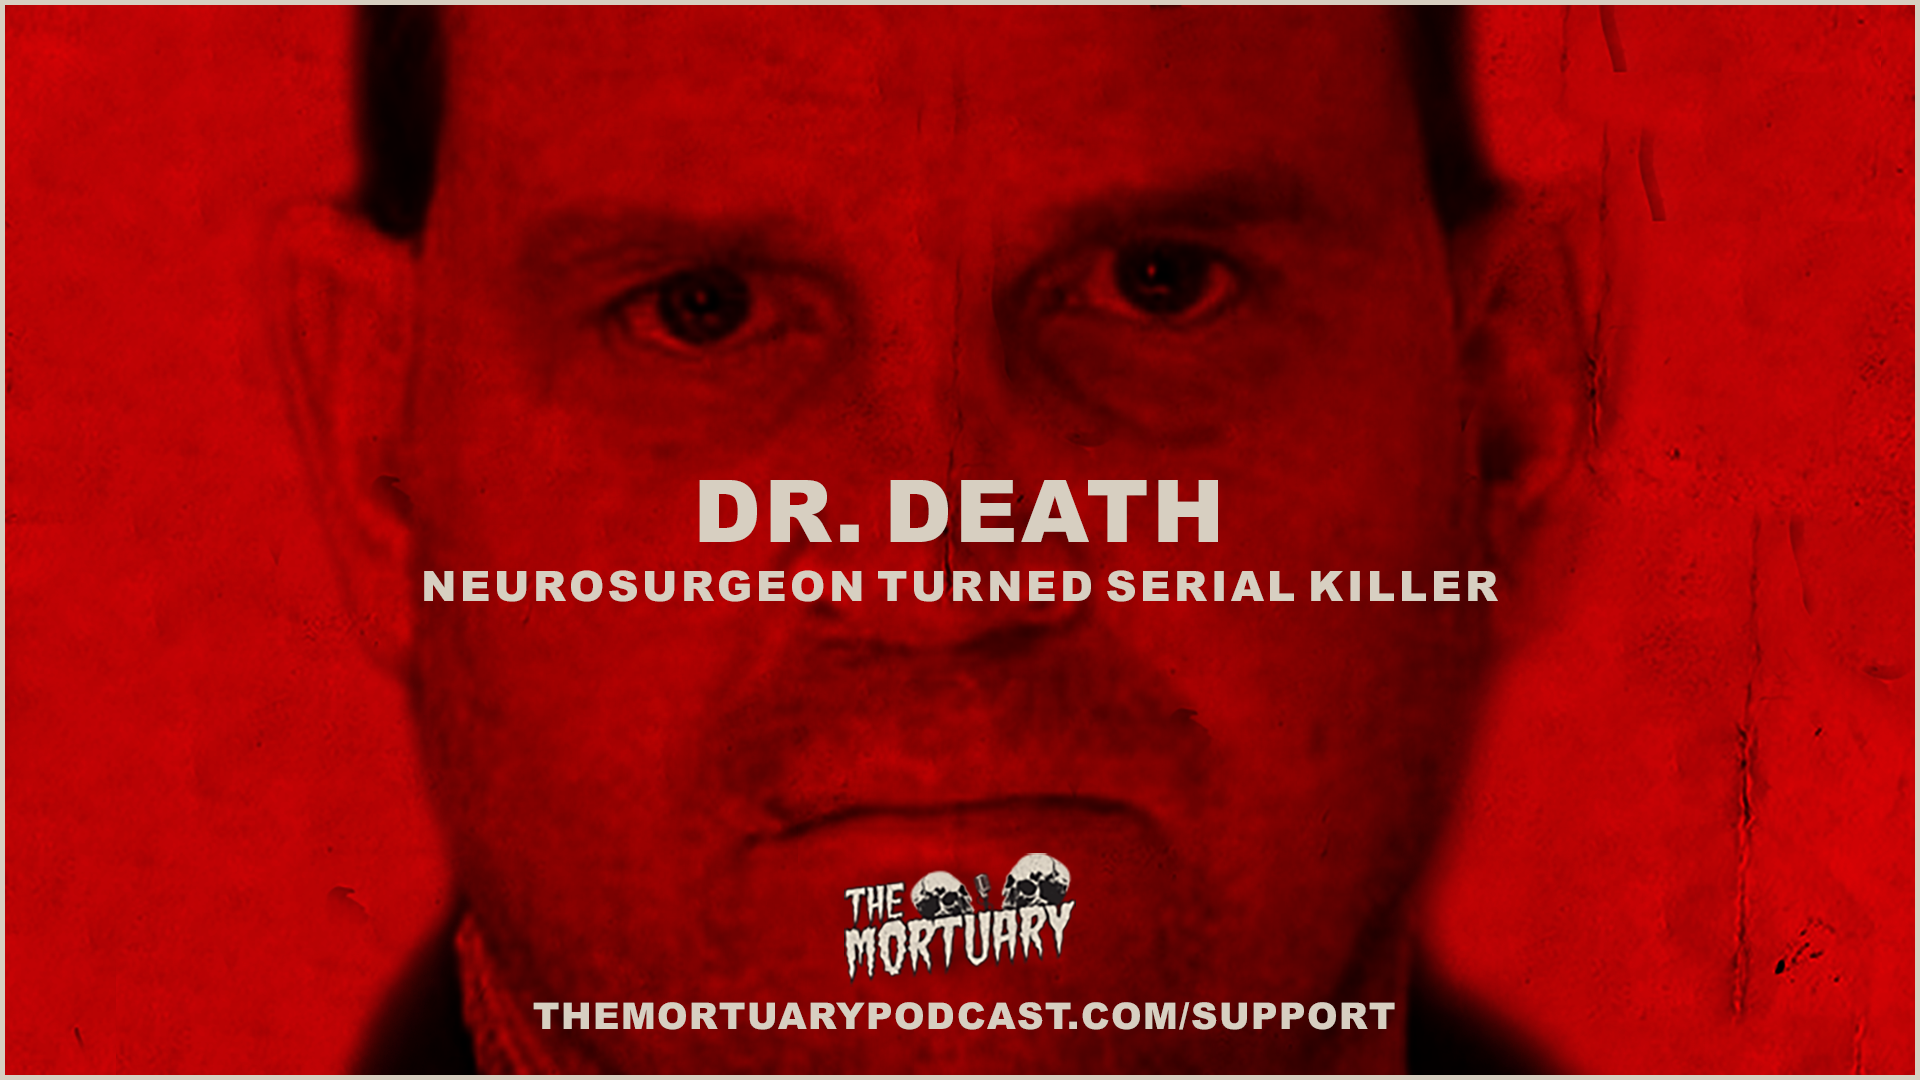 the mortuary — Enter The Mortuary (Blog) — The Mortuary Podcast